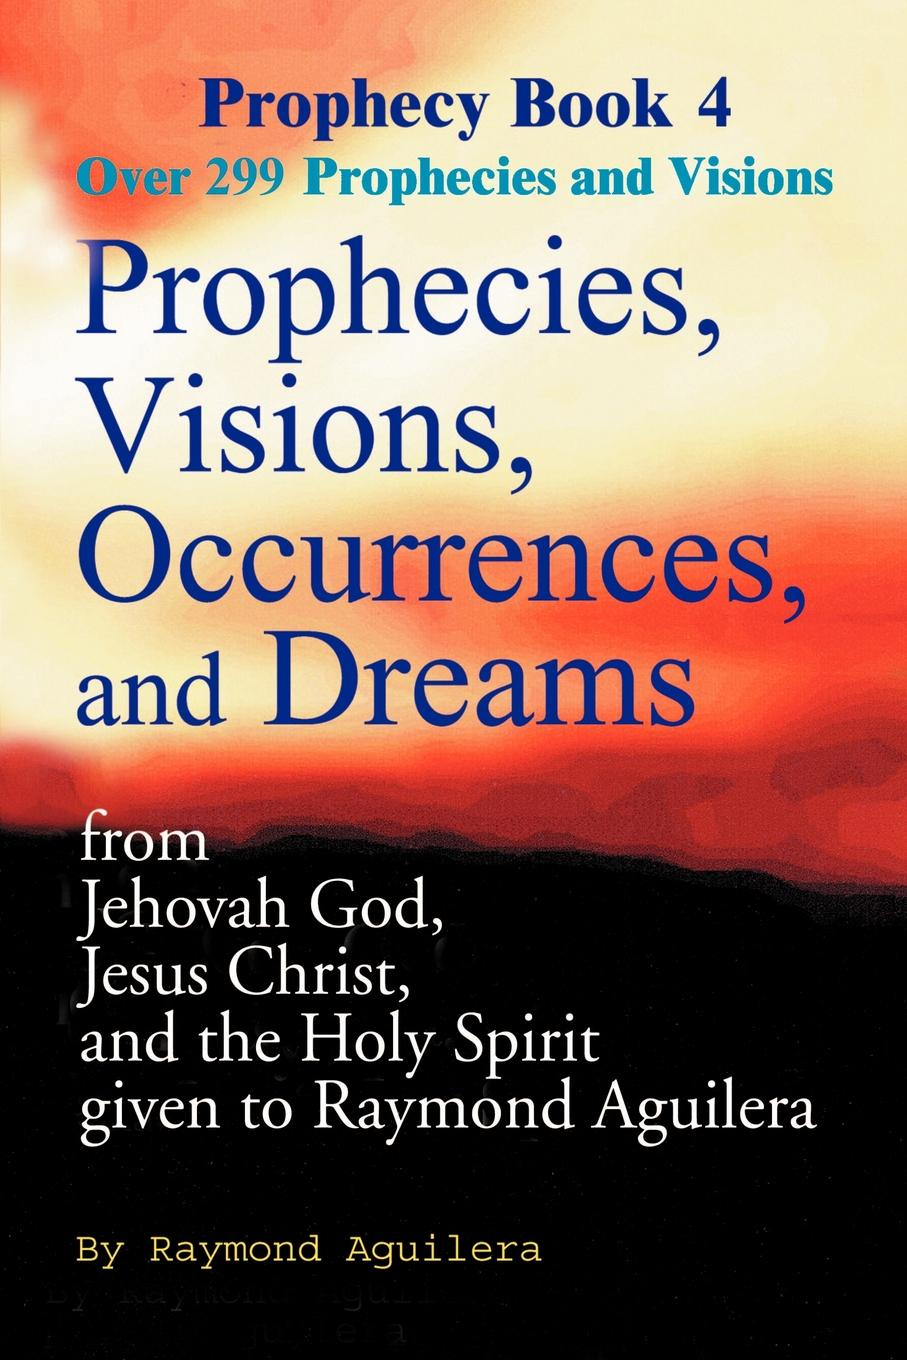 Raymond Aguilera Prophecies, Visions, Occurrences, and Dreams. From Jehovah God, Jesus Christ, and the Holy Spirit Given to Raymond Aguilera Book 4 maryann p diedwardo pennsylvania voices book two appaloosa visions